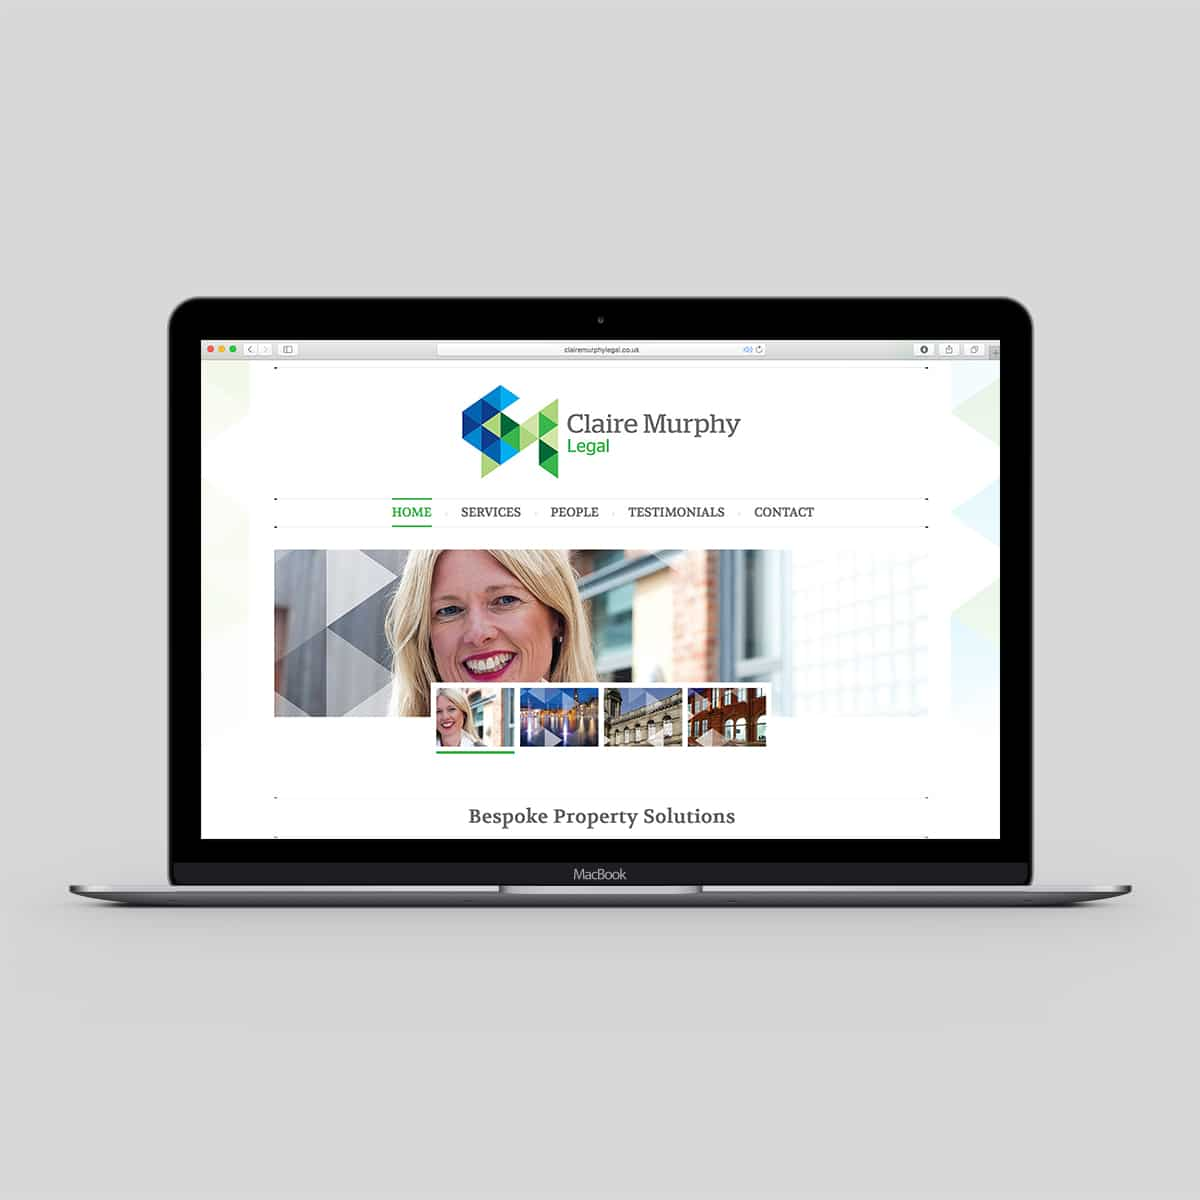 Sample page from website design for Claire Murphy Legal in Ilkley, West Yorkshire displayed on laptop